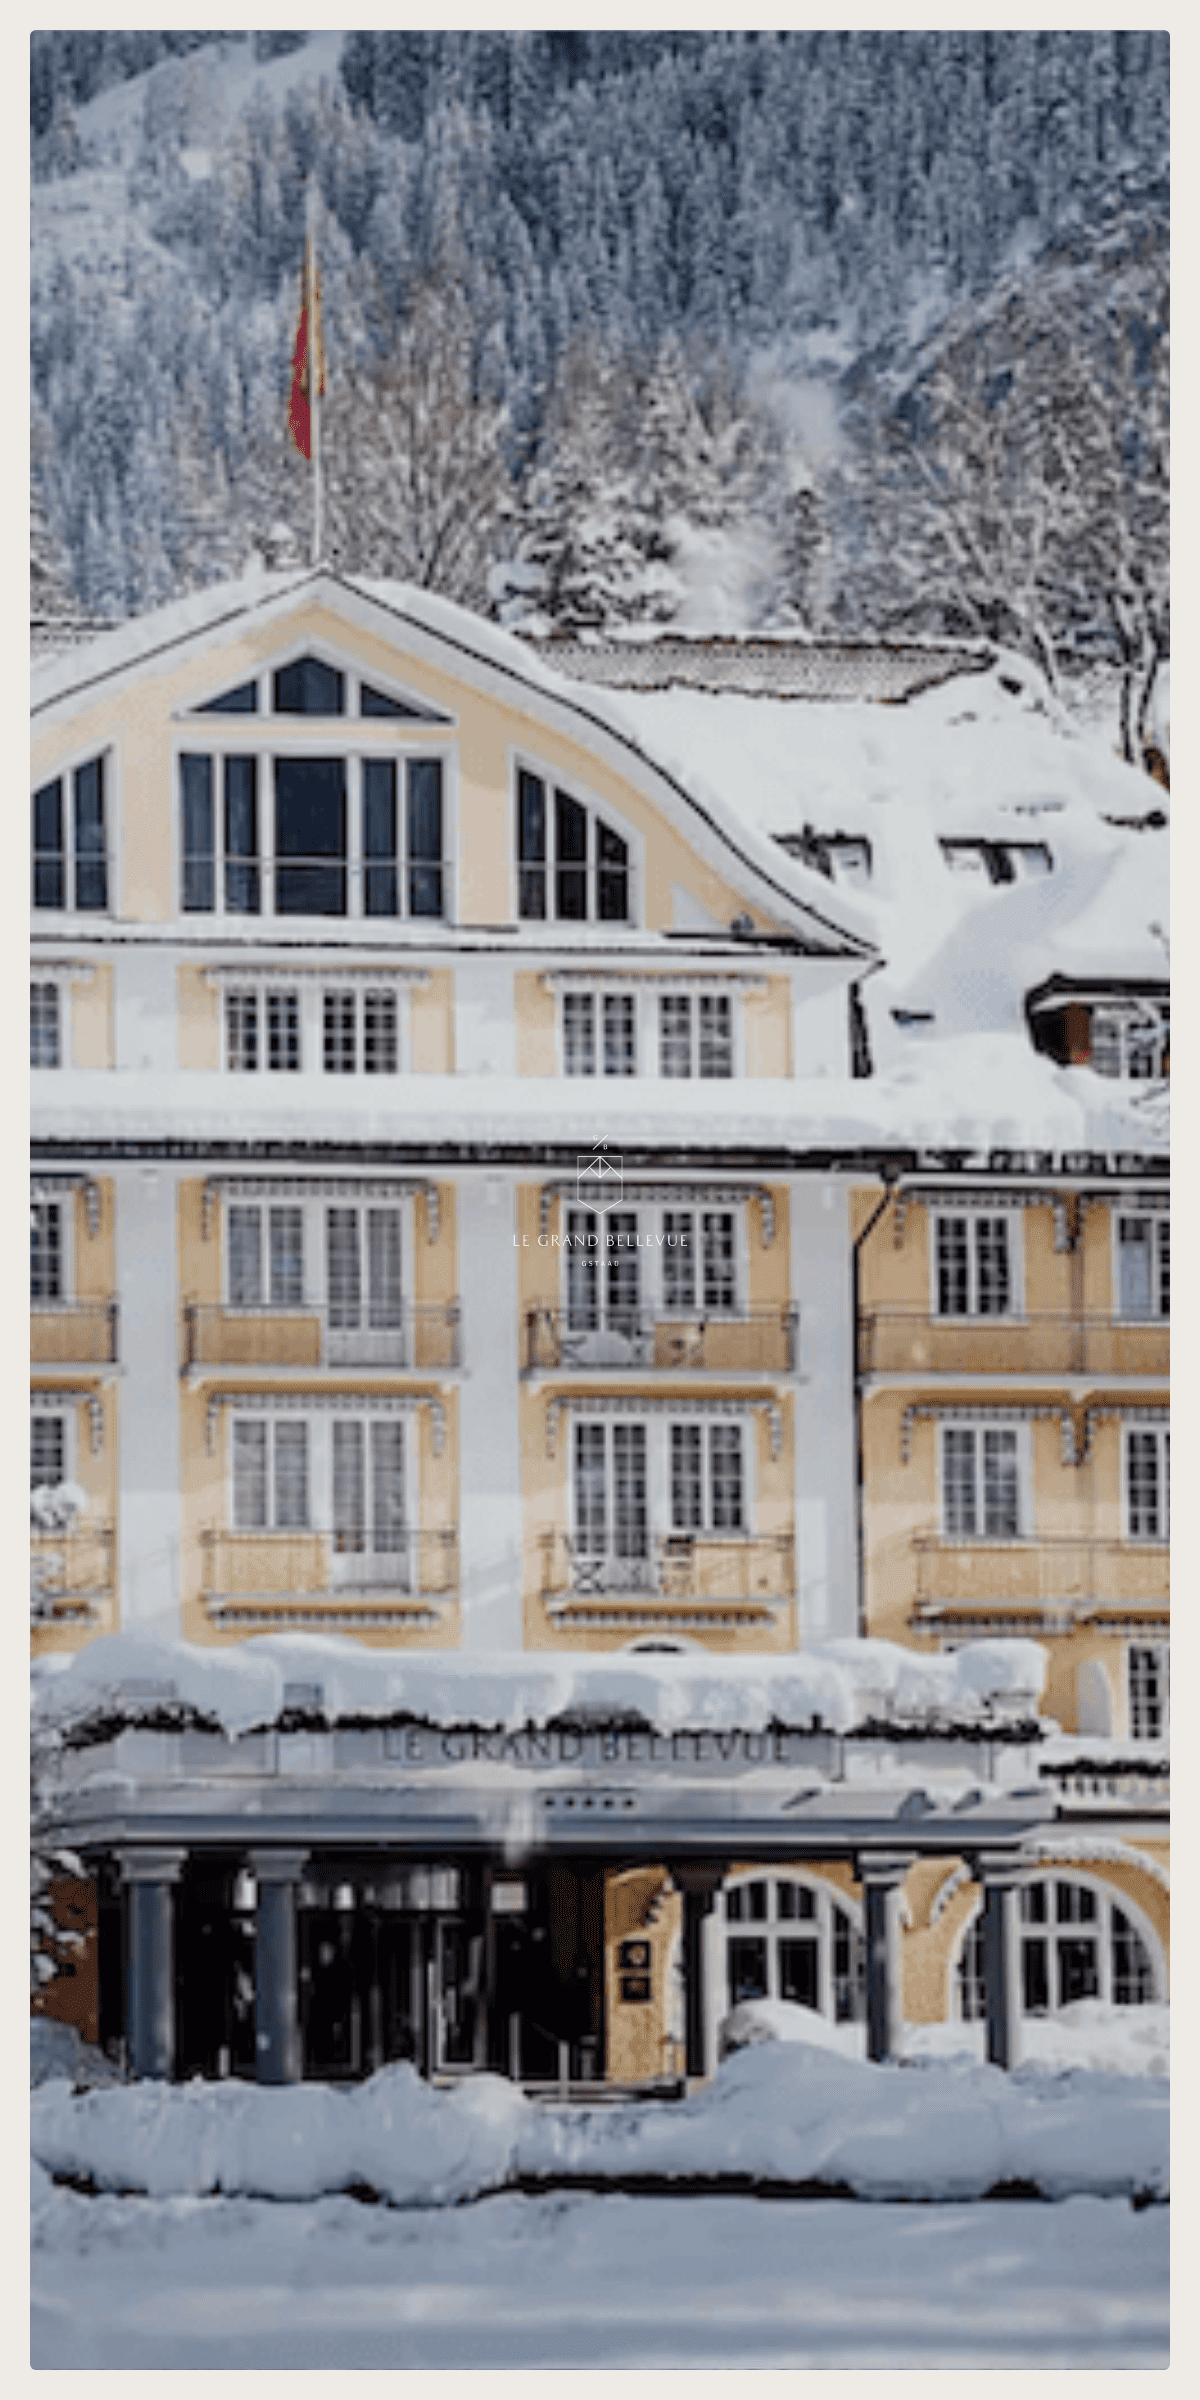 Home – Le Grand Bellevue Gstaad